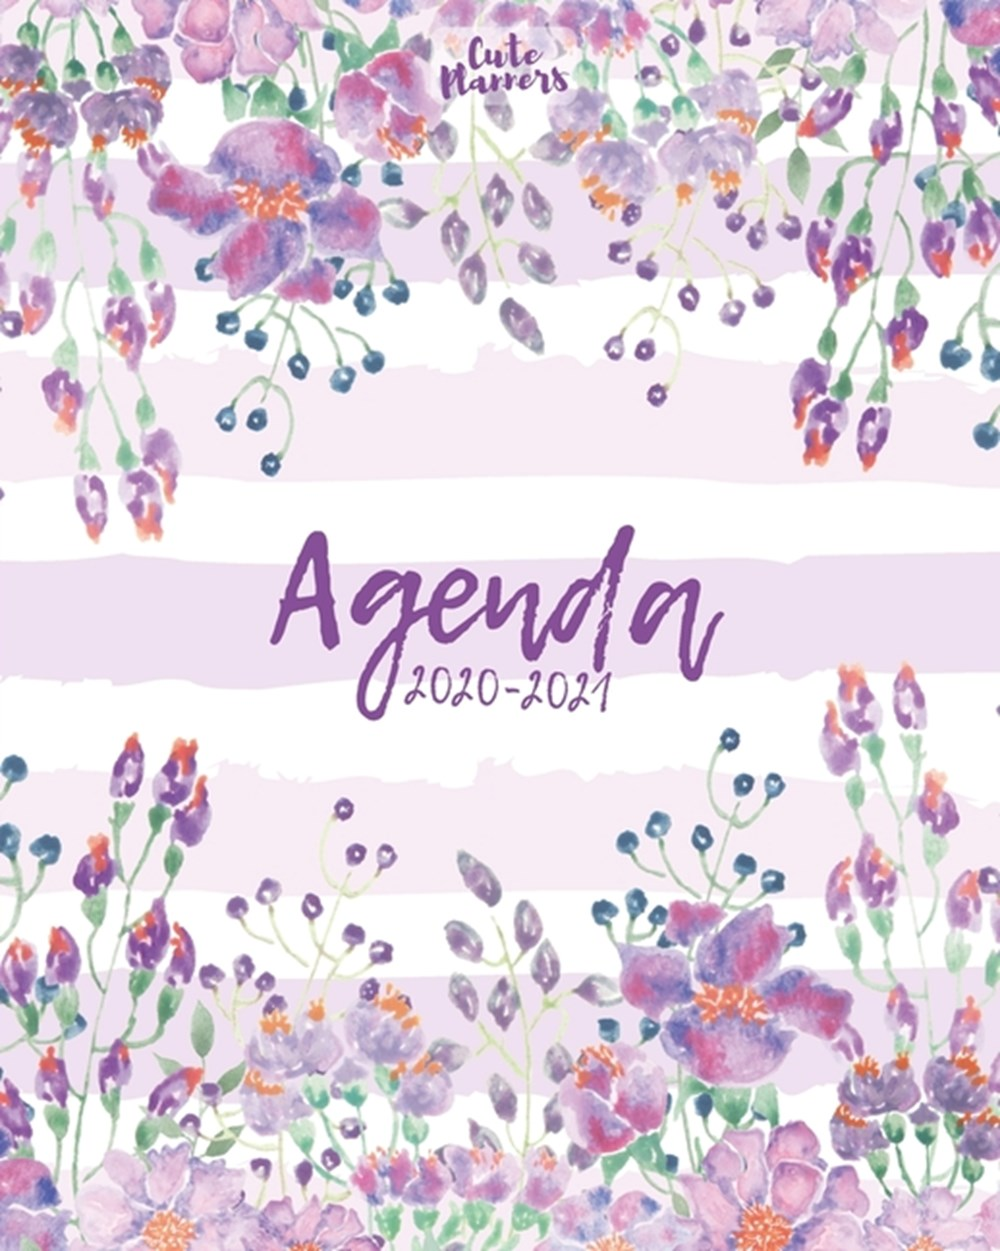 Agenda 2020-2021 Agenda 2020 -2021: Cute Planners / Pretty White & violet floral Two Year Daily Week